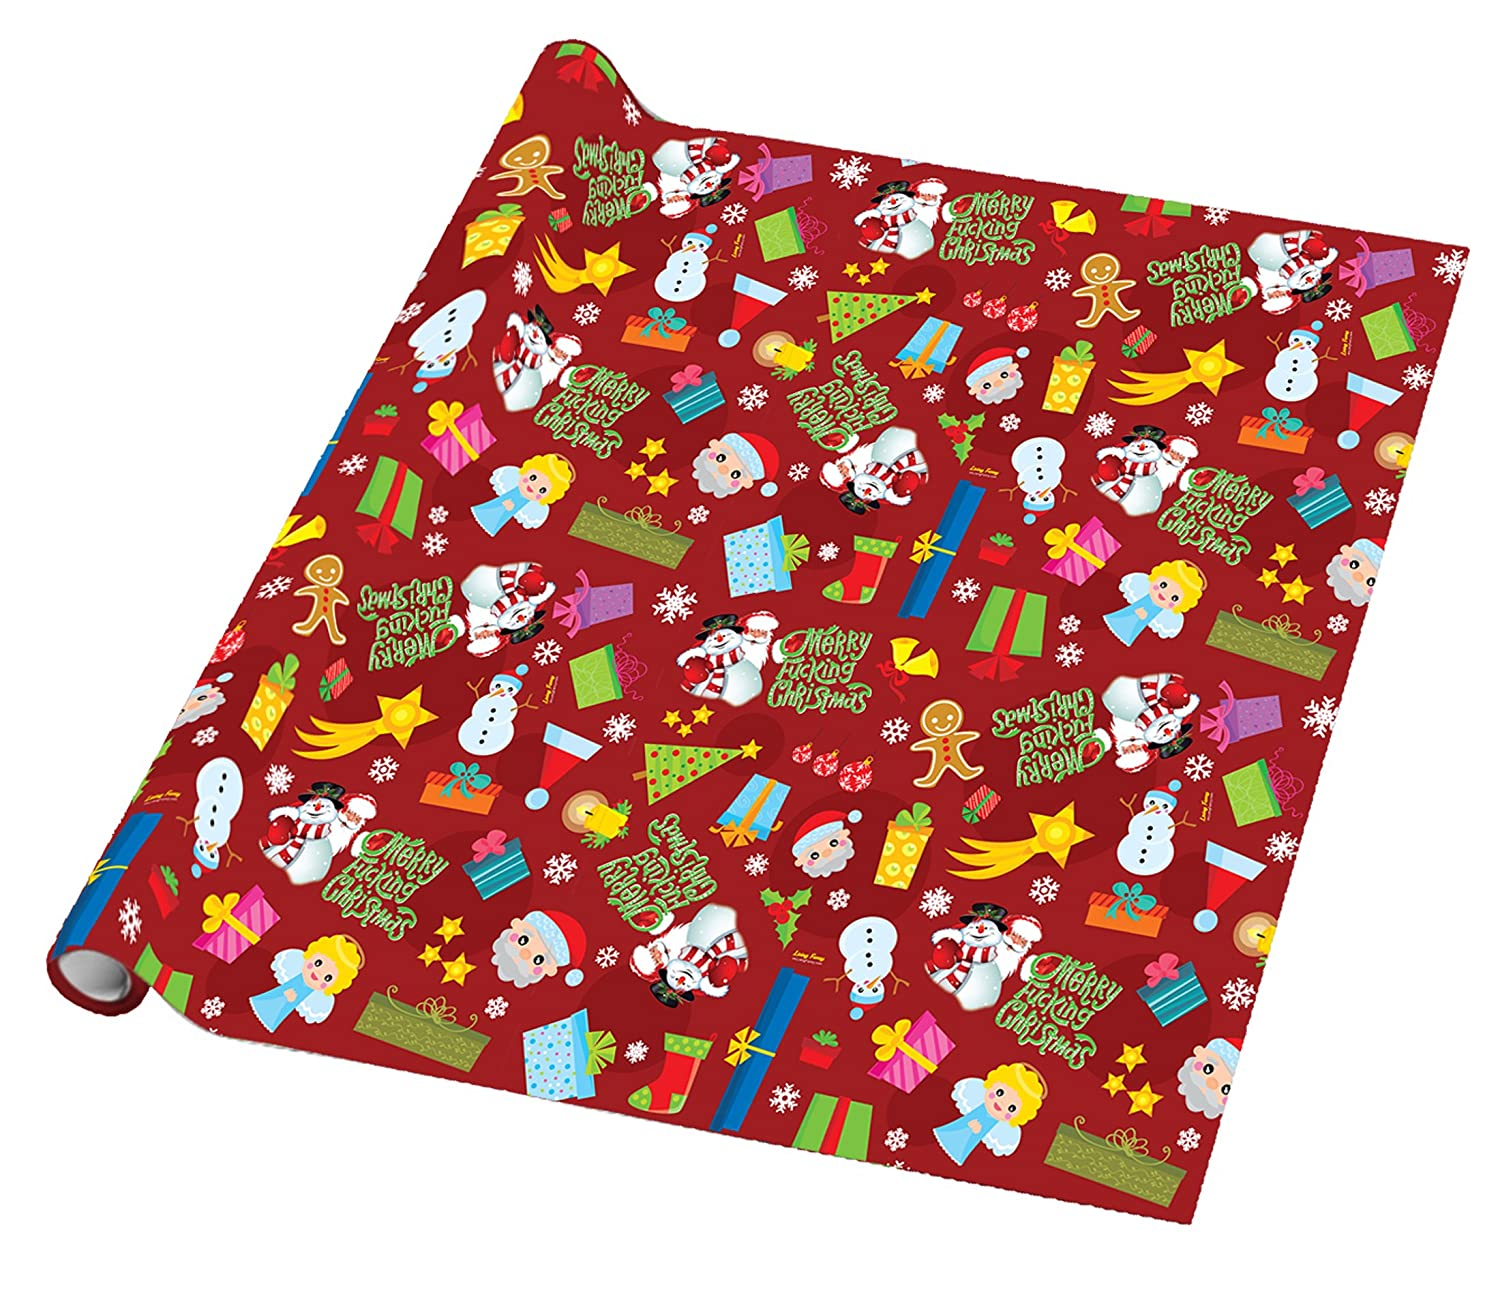 amazoncom merry fucking christmas wrapping paper arts crafts sewing - Walmart Christmas Wrapping Paper